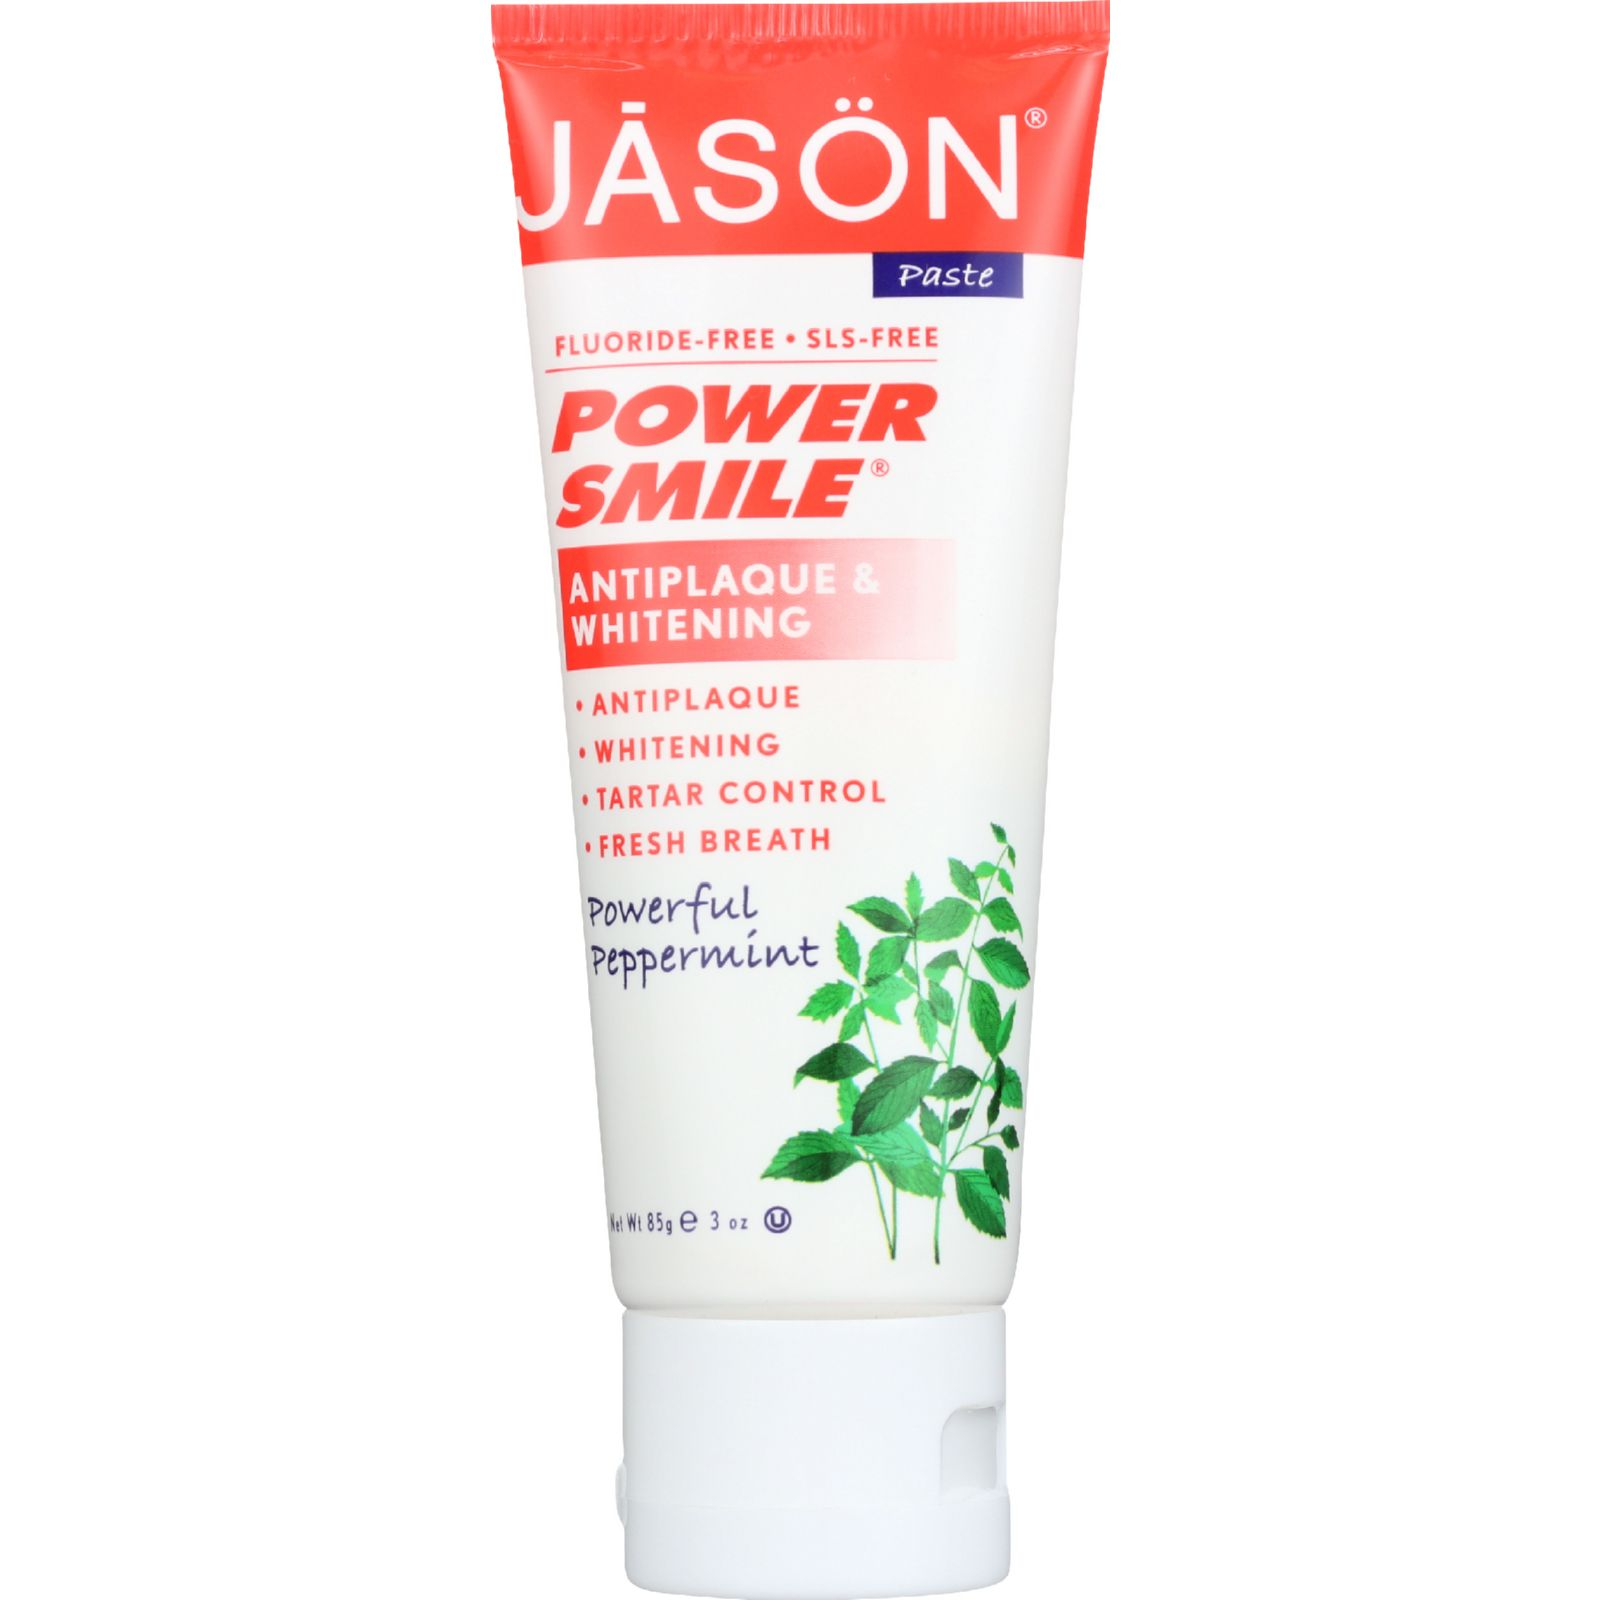 Jason Natural Products Toothpaste  Powersmile  Antiplaque and Whitening  Powerful Peppermint  Fluoride Free  3 oz  case of 12